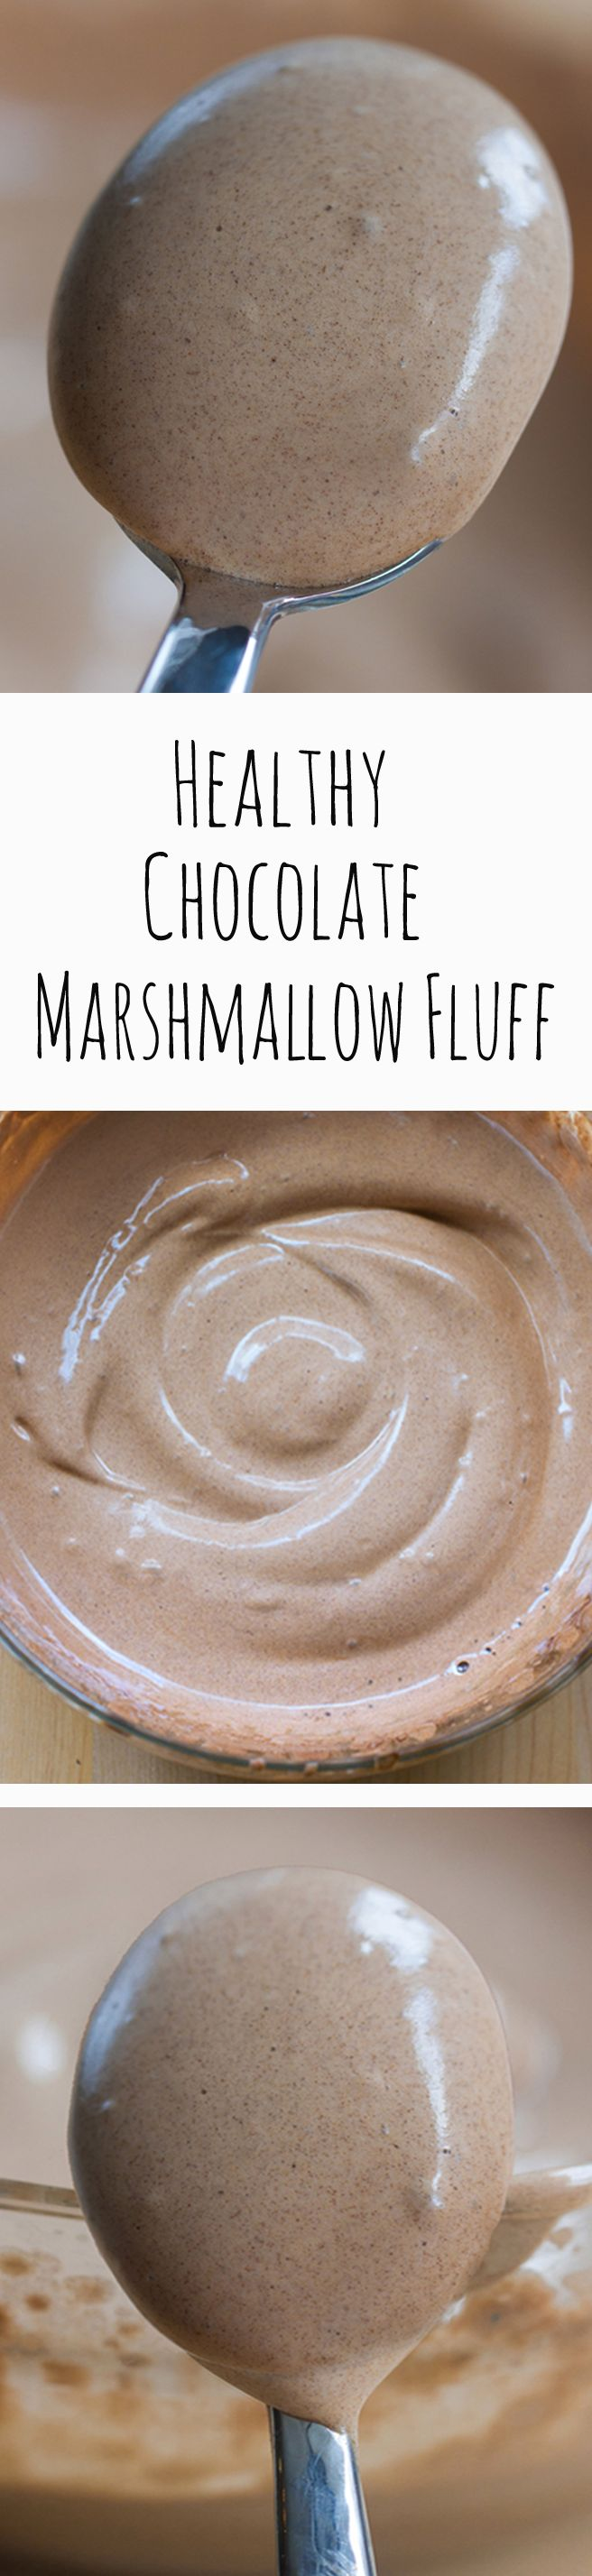 Chocolate Marshmallow Fluff